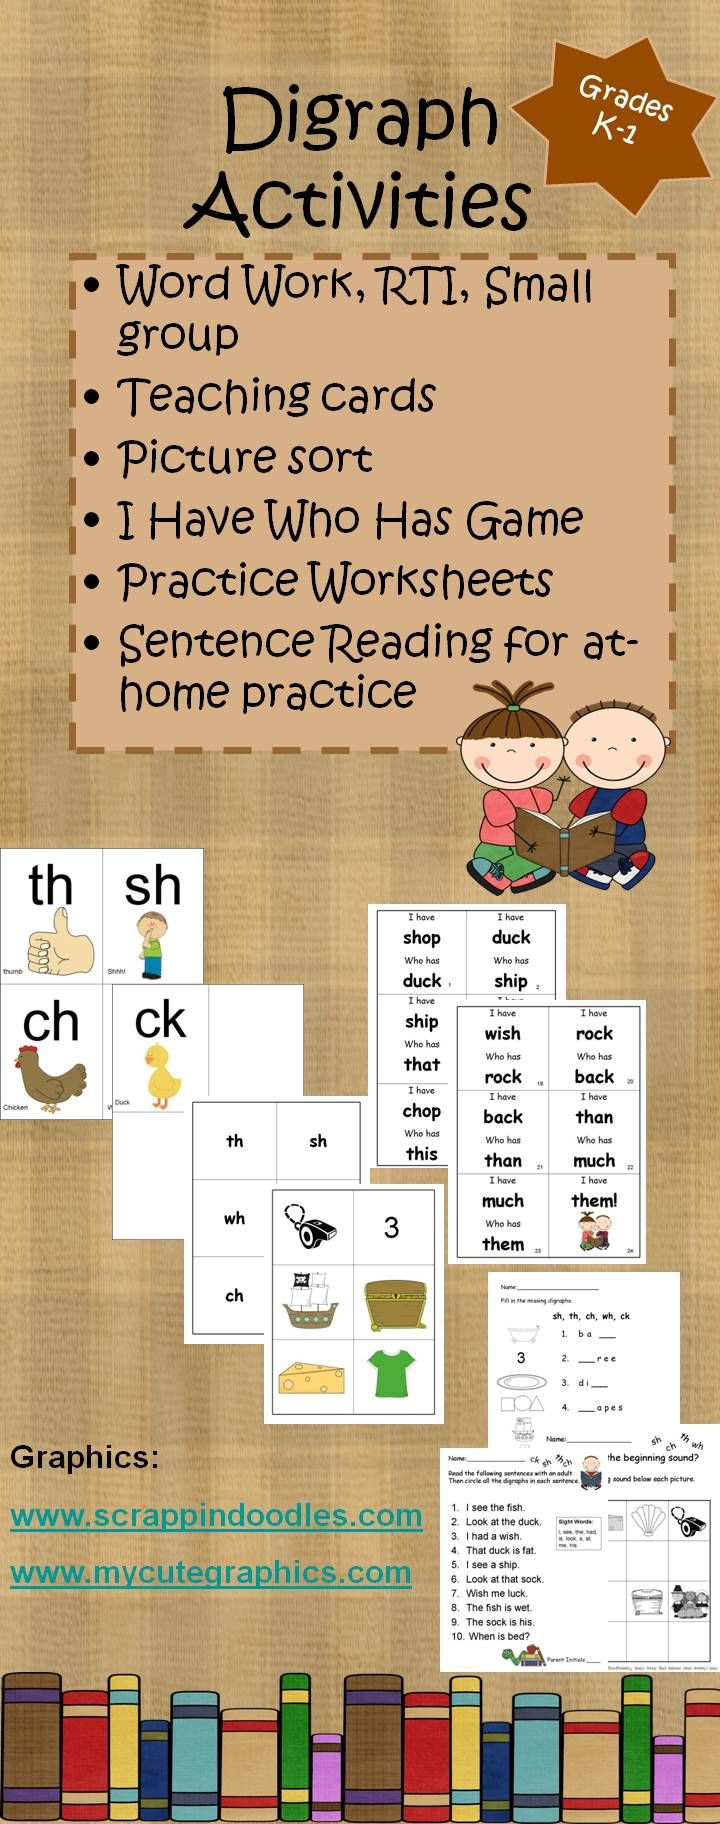 Digraph activities for grades K-1, RTI, small group